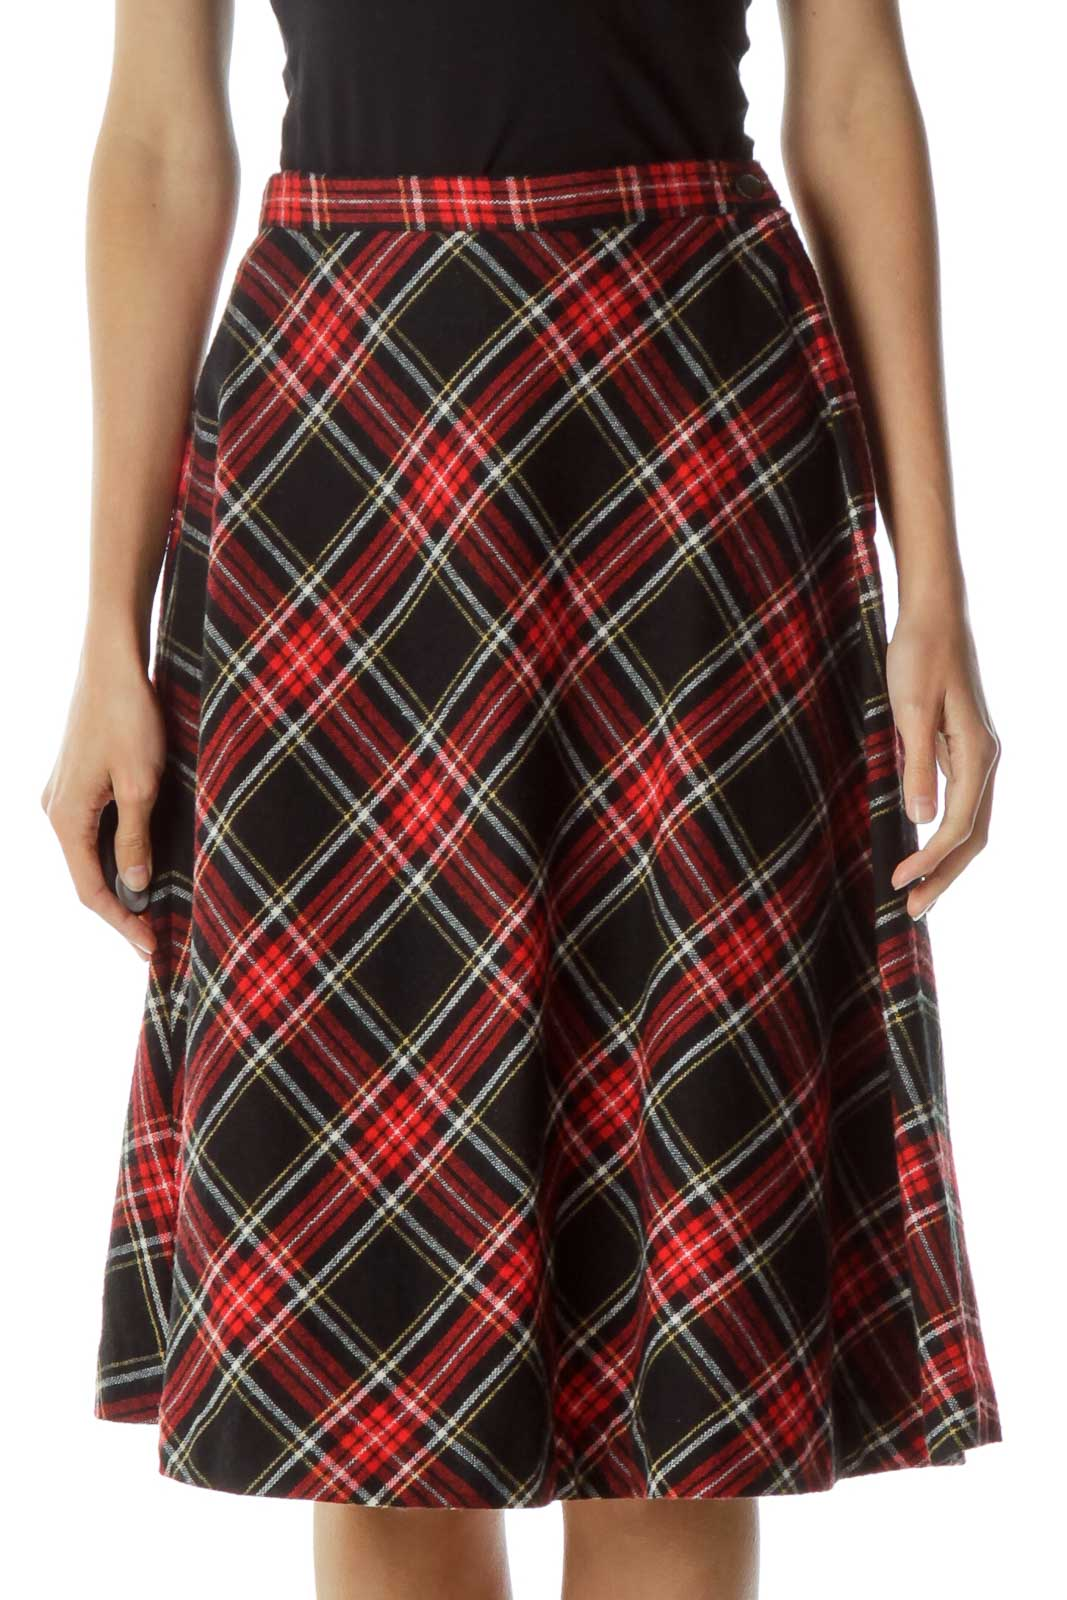 Red Black Plaid A-Line Skirt Front